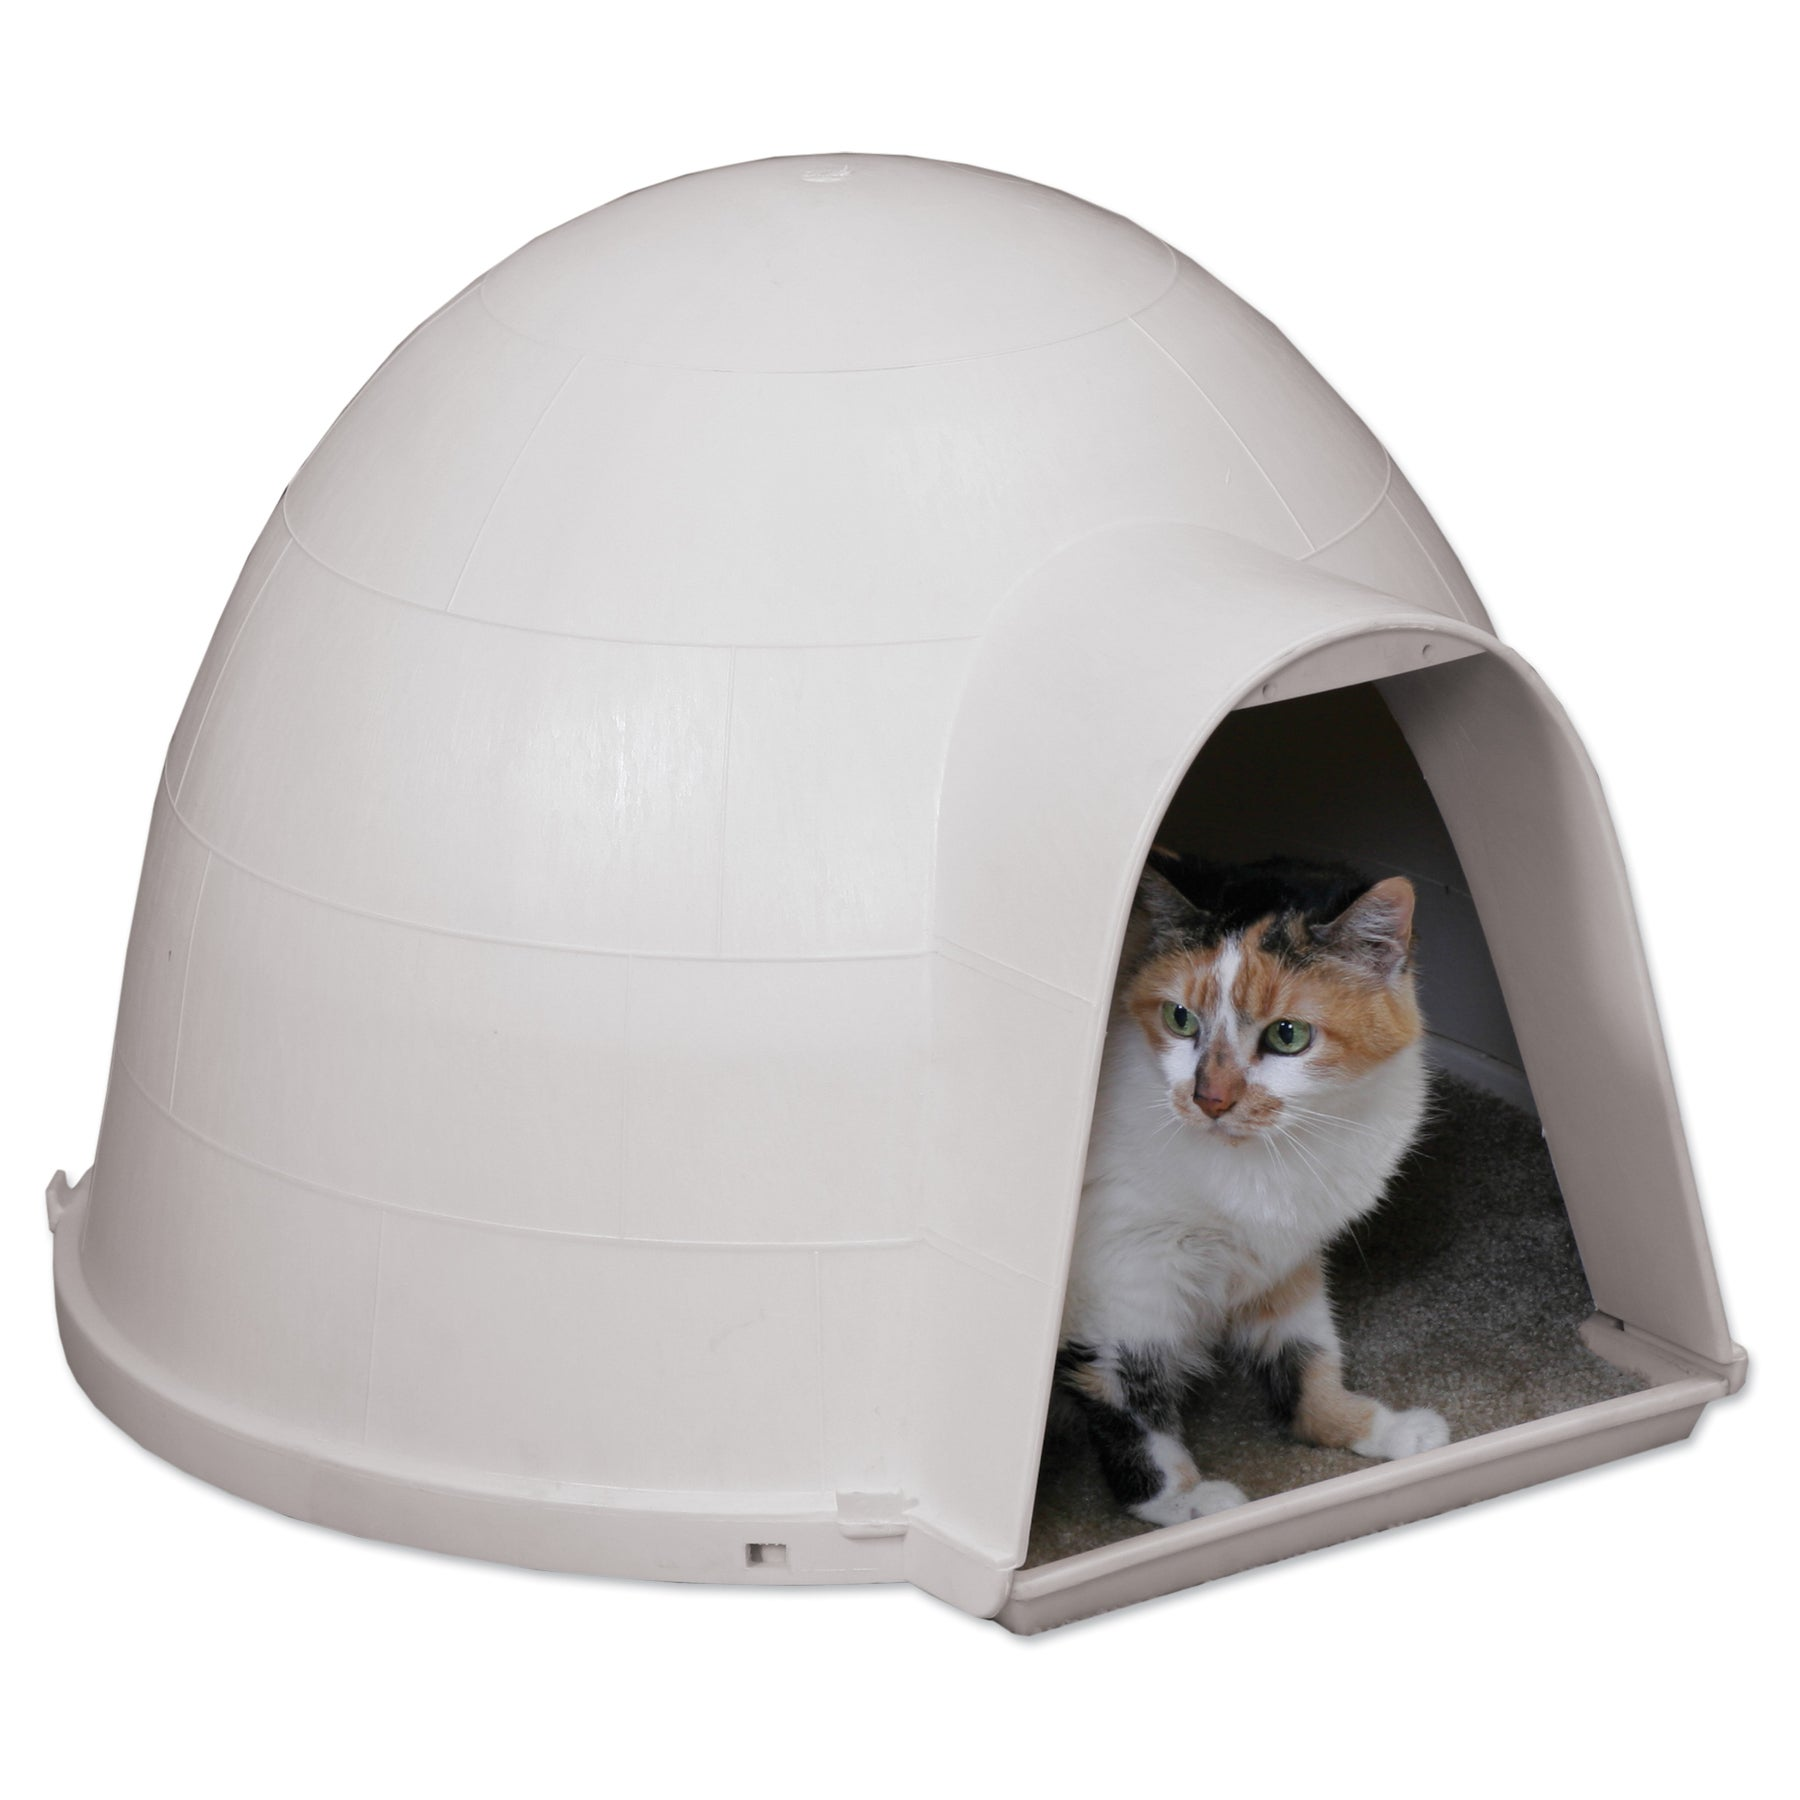 Doskocil Petmate Kitty Kat Condo Outdoor Cat House (Kitty...